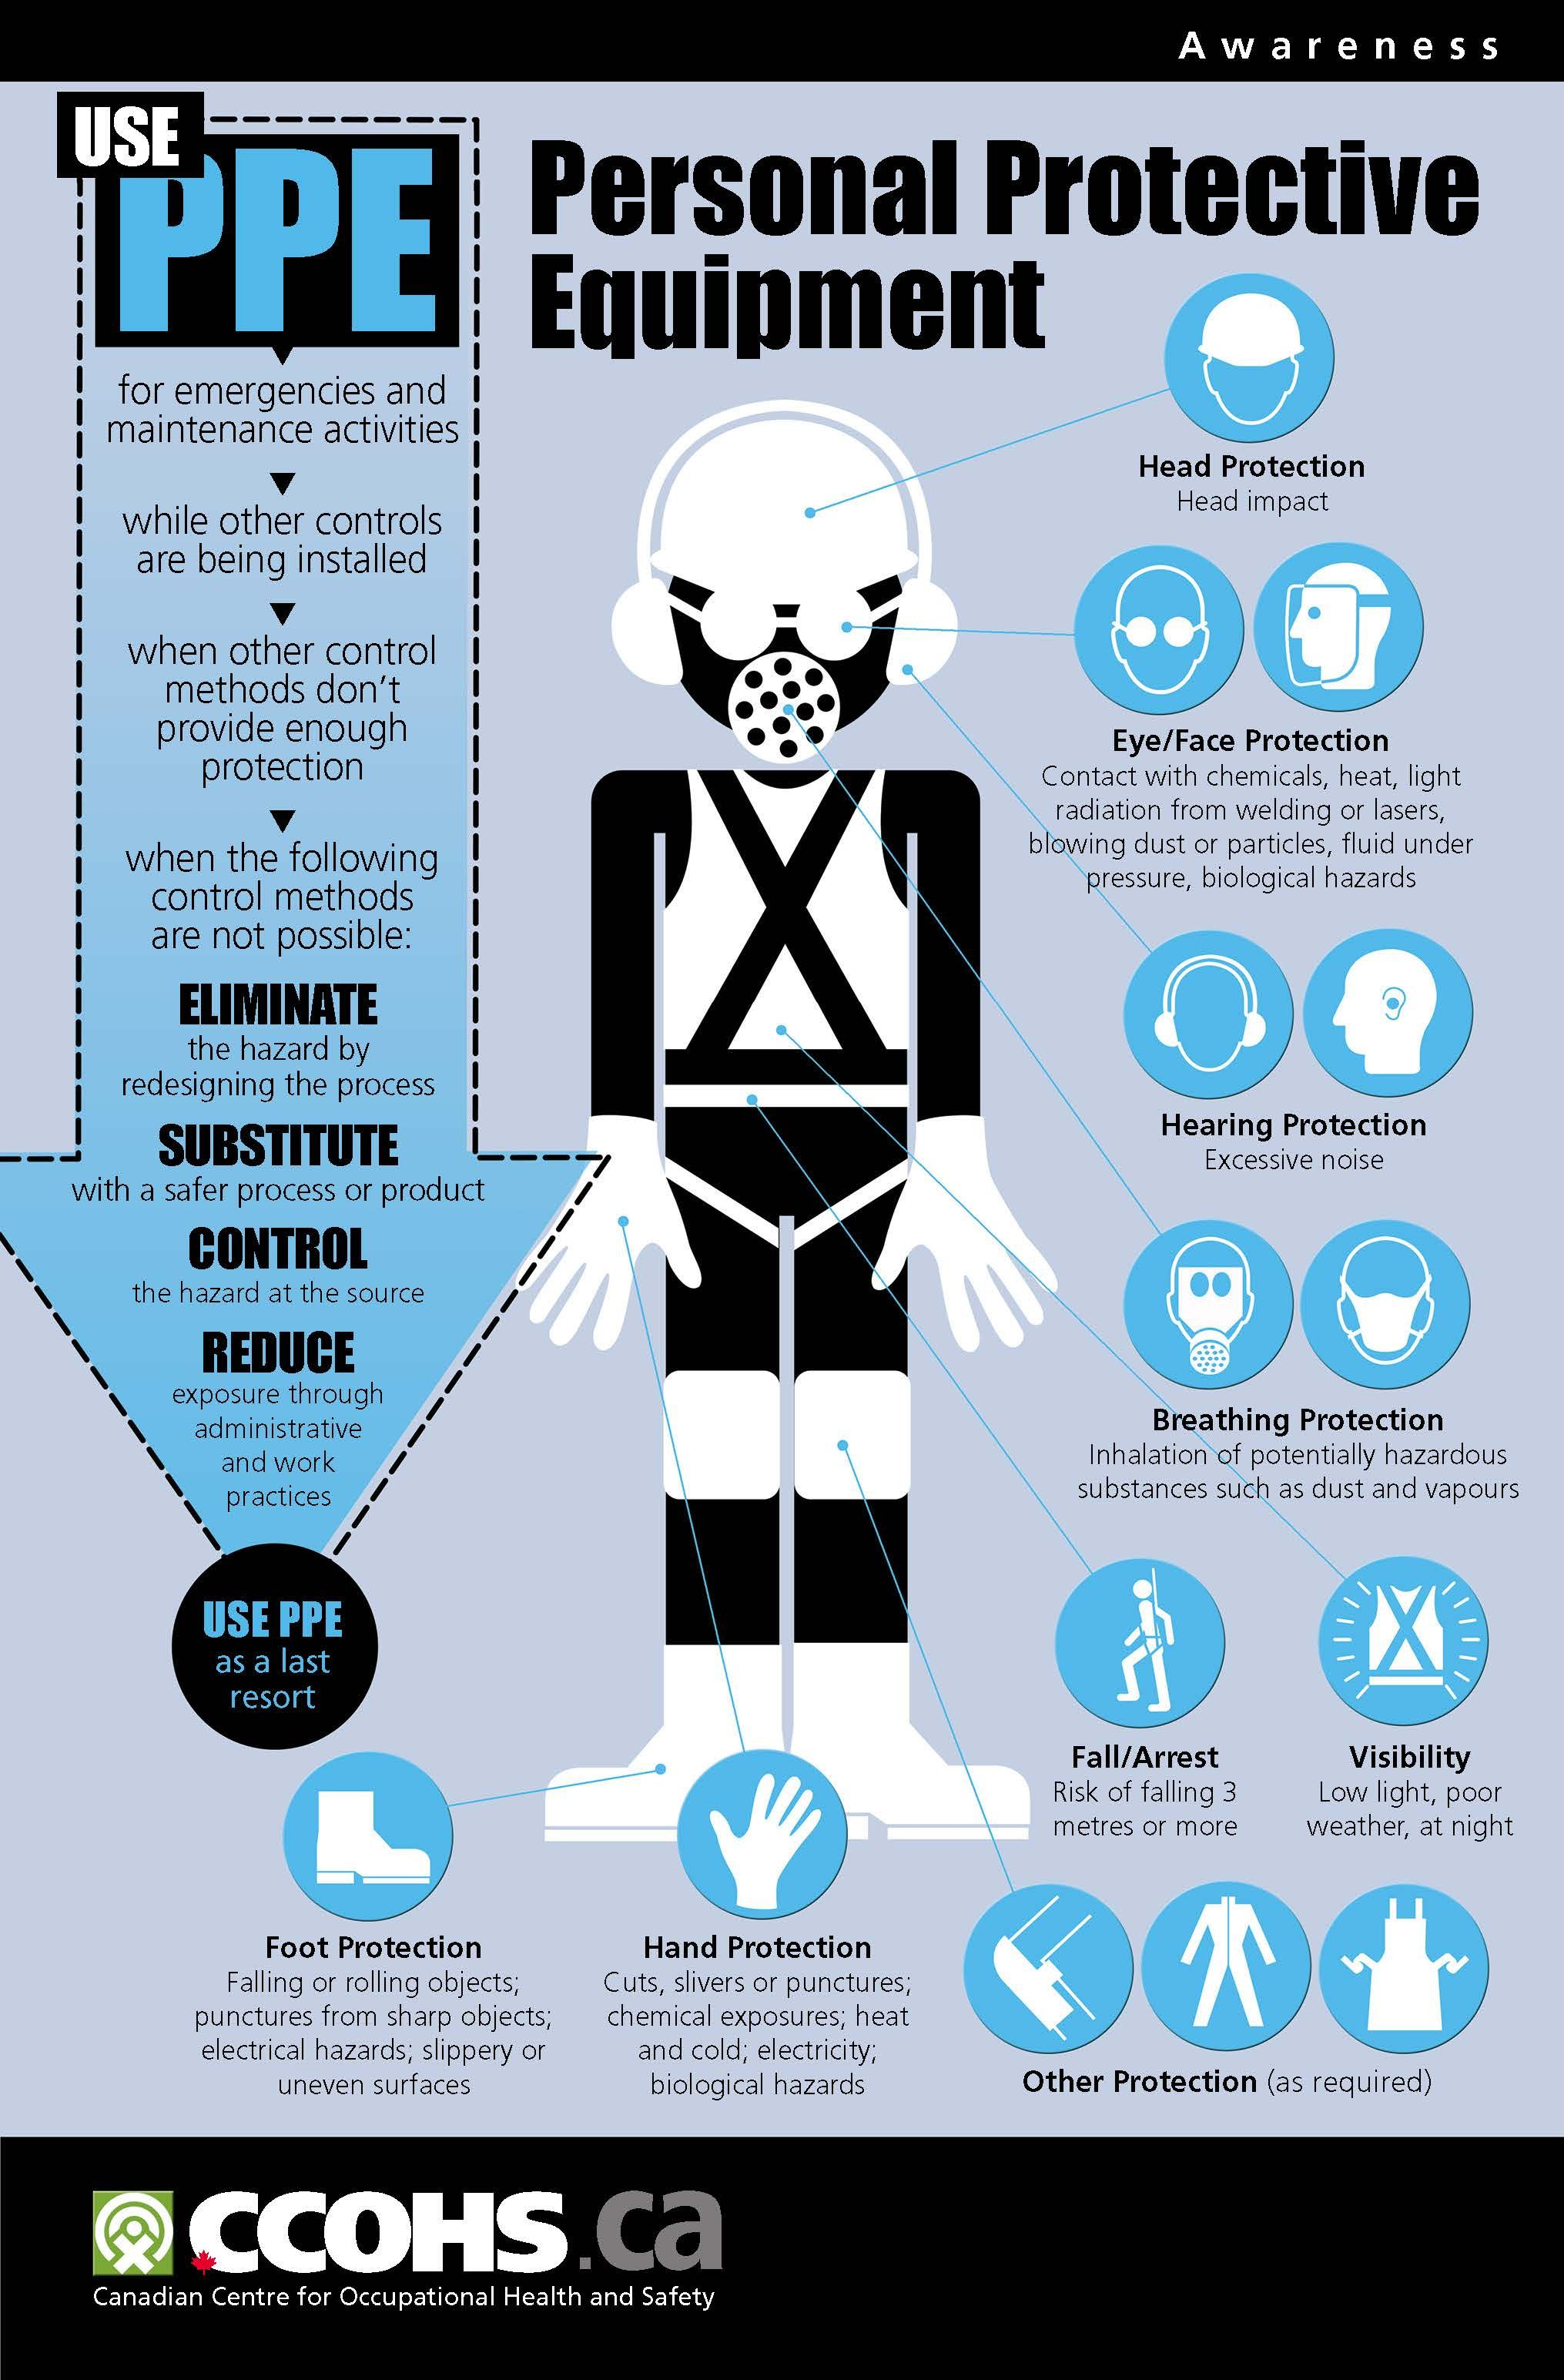 PPE poster from the Canadian Centre for Occupational